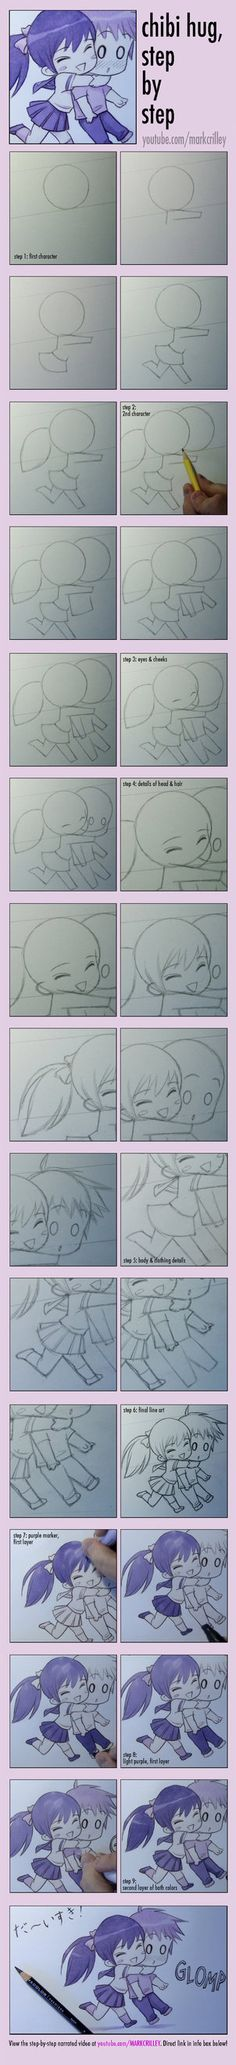 Chibi Hug, Step by Step by markcrilley on deviantART